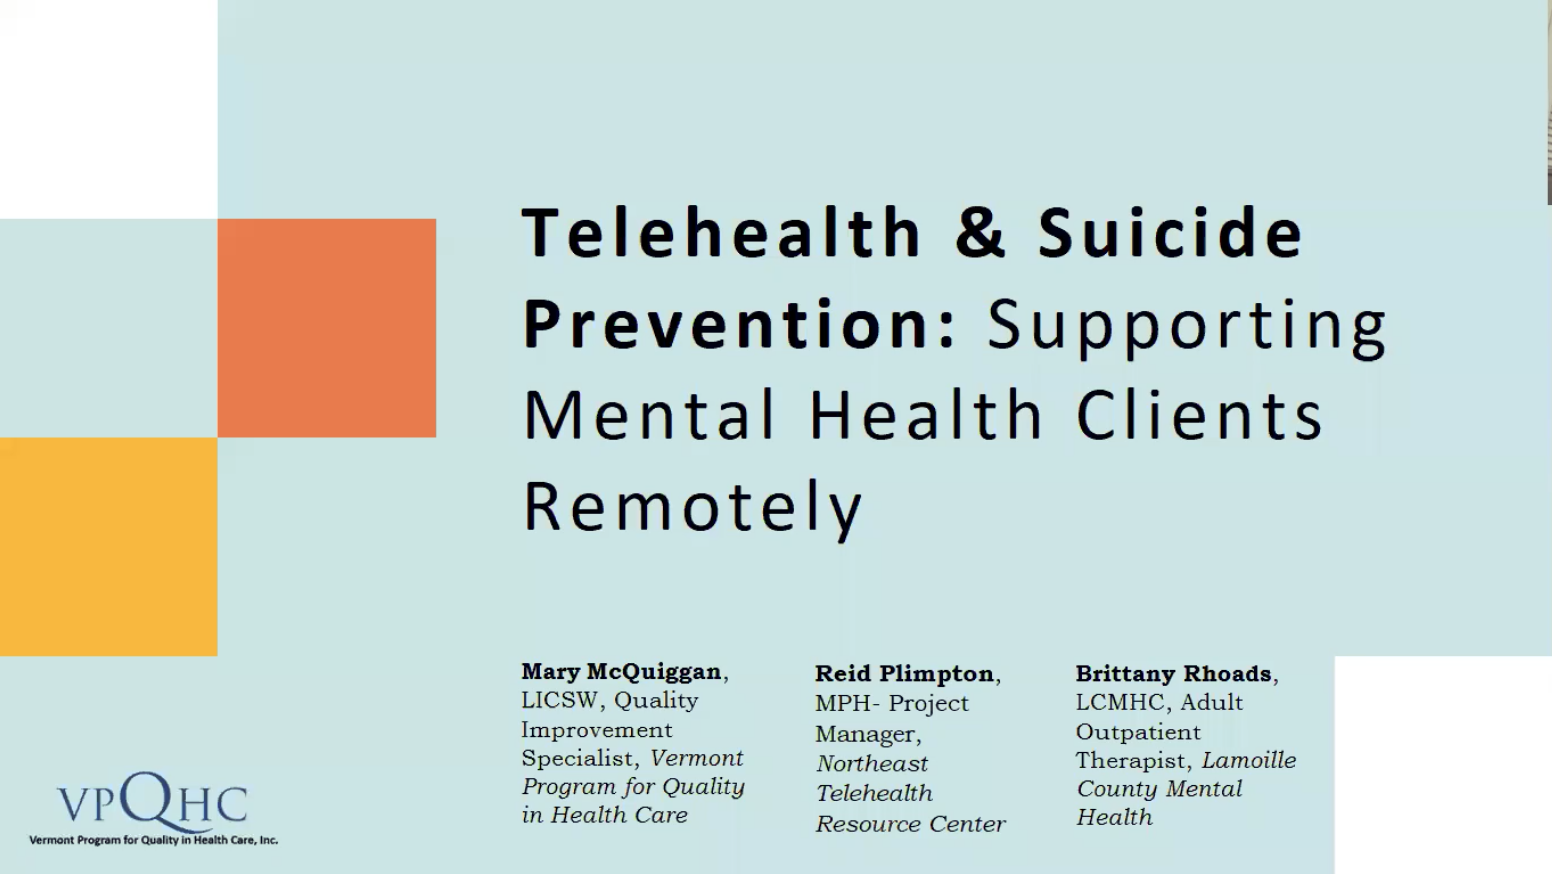 Telehealth & Suicide Prevention: Supporting Mental Health Clients Remotely